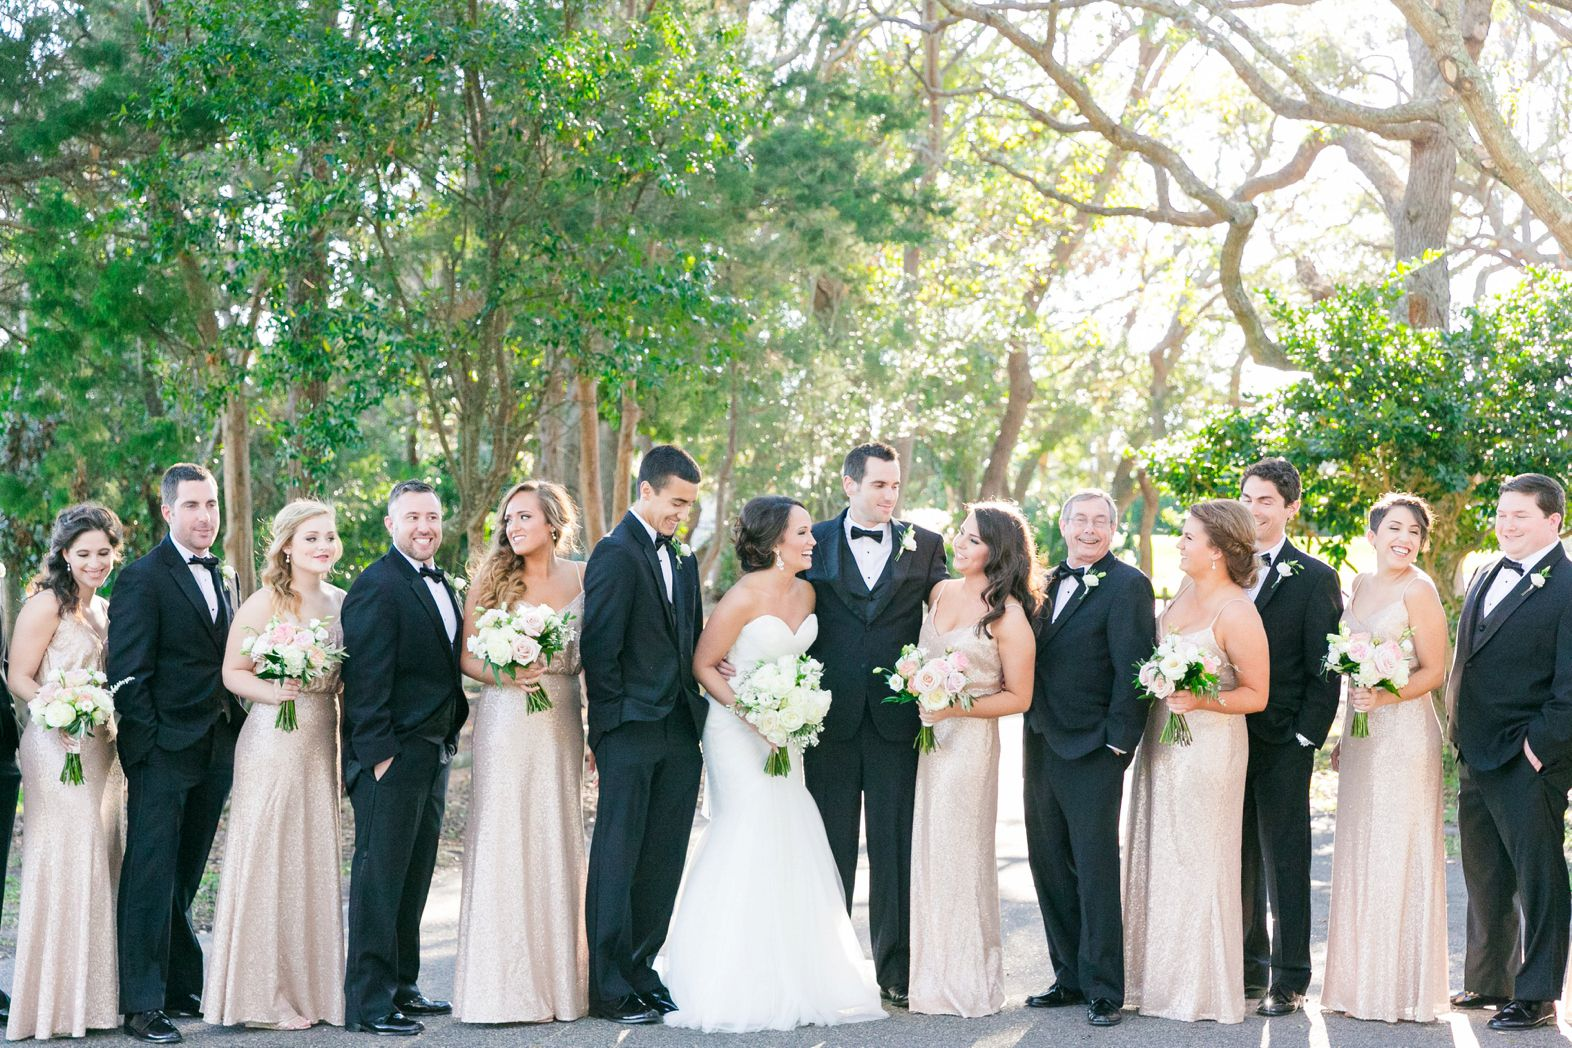 Long Rose Gold Sequined Gowns Black Tuxedos Elegant Blush Gold Wedding At The Dunes Club In Myrtle Beach By Blush Gold Wedding Gold Bridal Party Wedding [ 1048 x 1572 Pixel ]